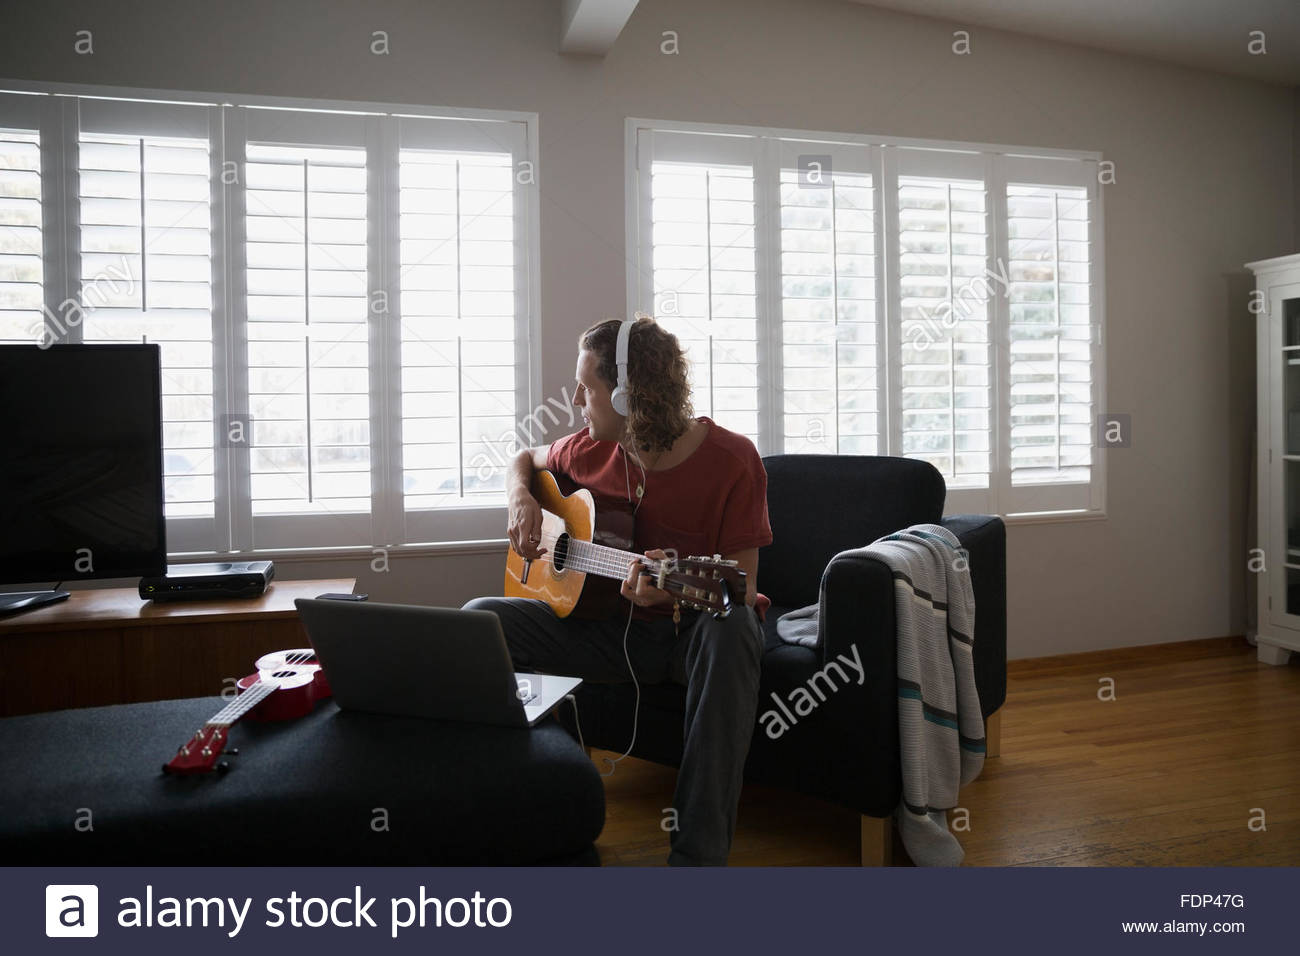 Man with headphones playing guitar in living room - Stock Image